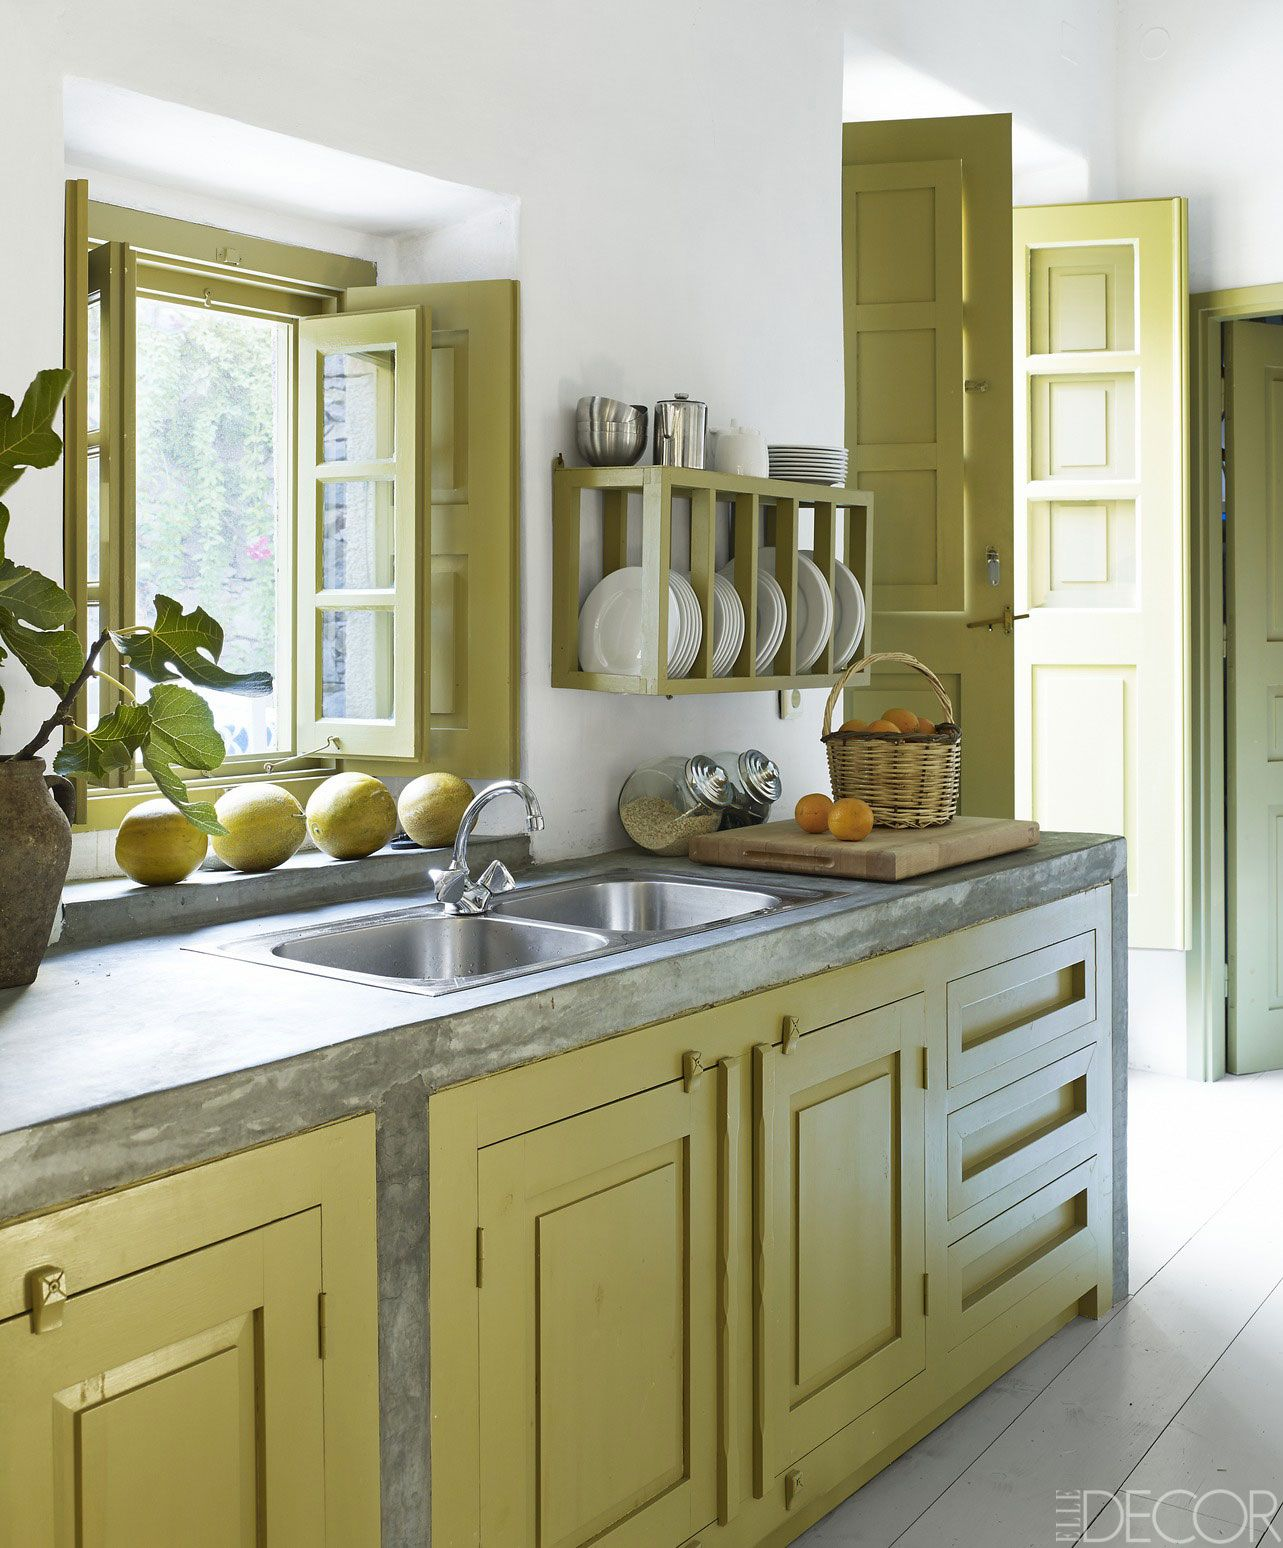 Kitchen Picture Ideas 50 small kitchen design ideas - decorating tiny kitchens